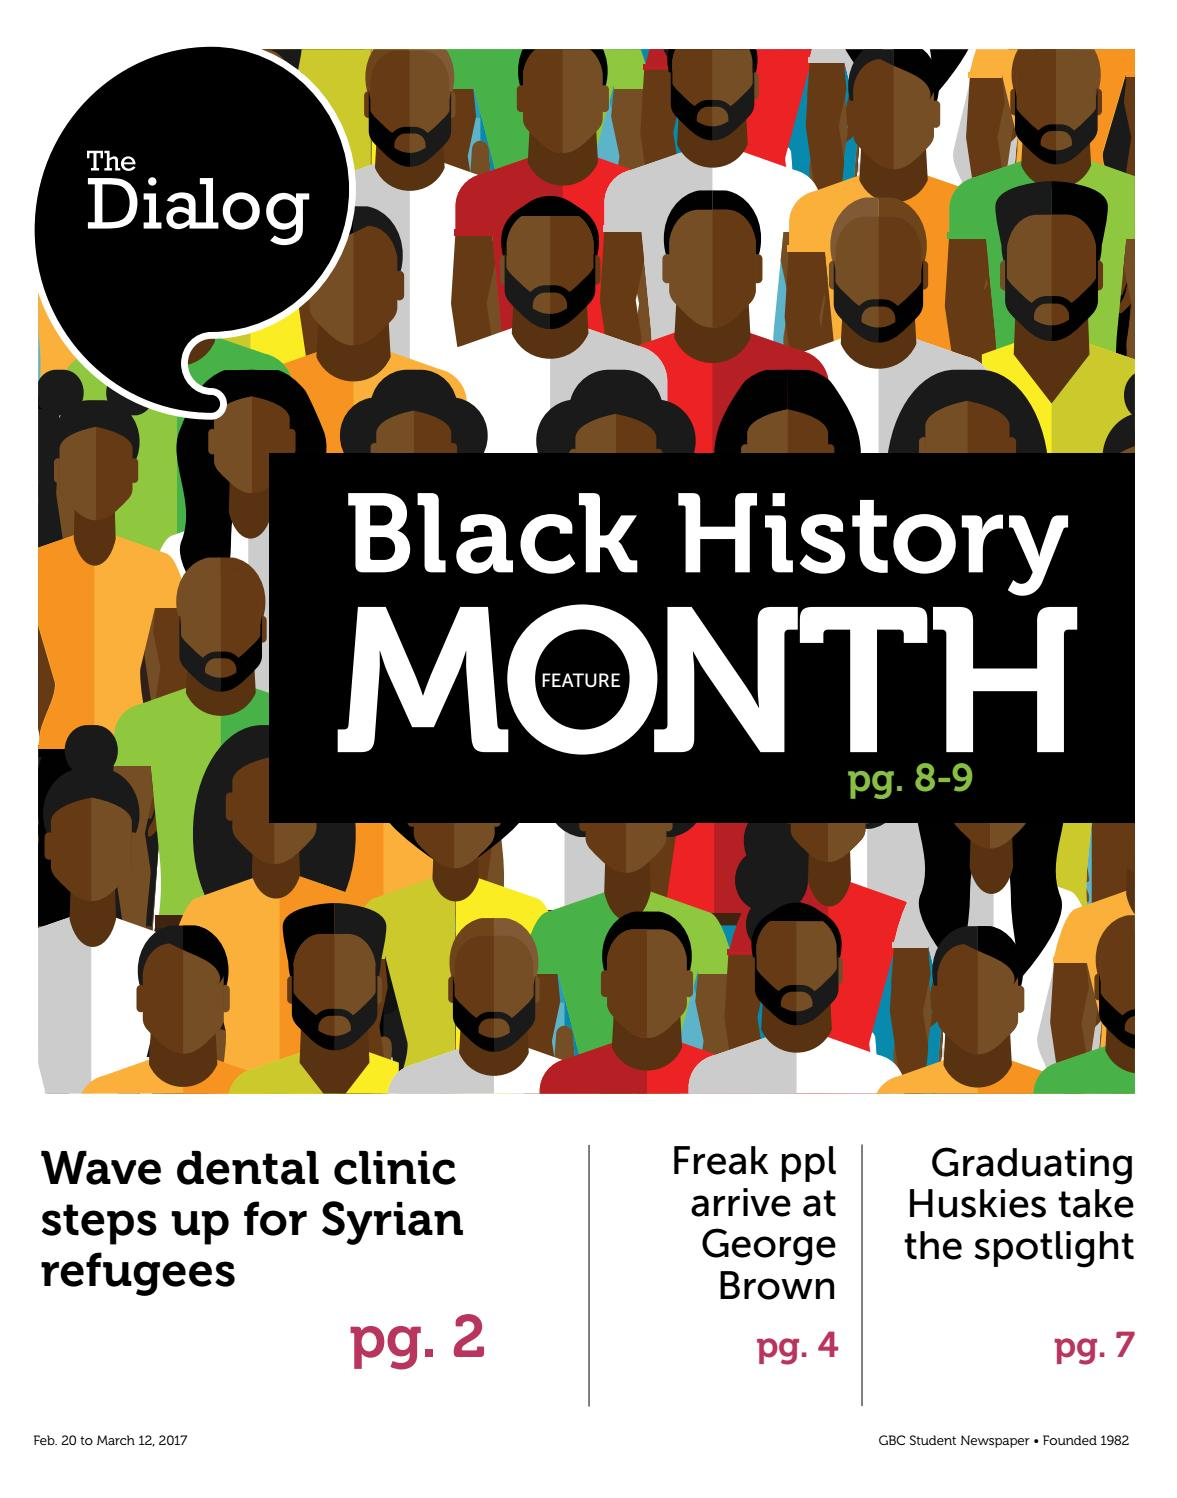 The Dialog, Feb  20 to March 12, 2017 by The Dialog - issuu